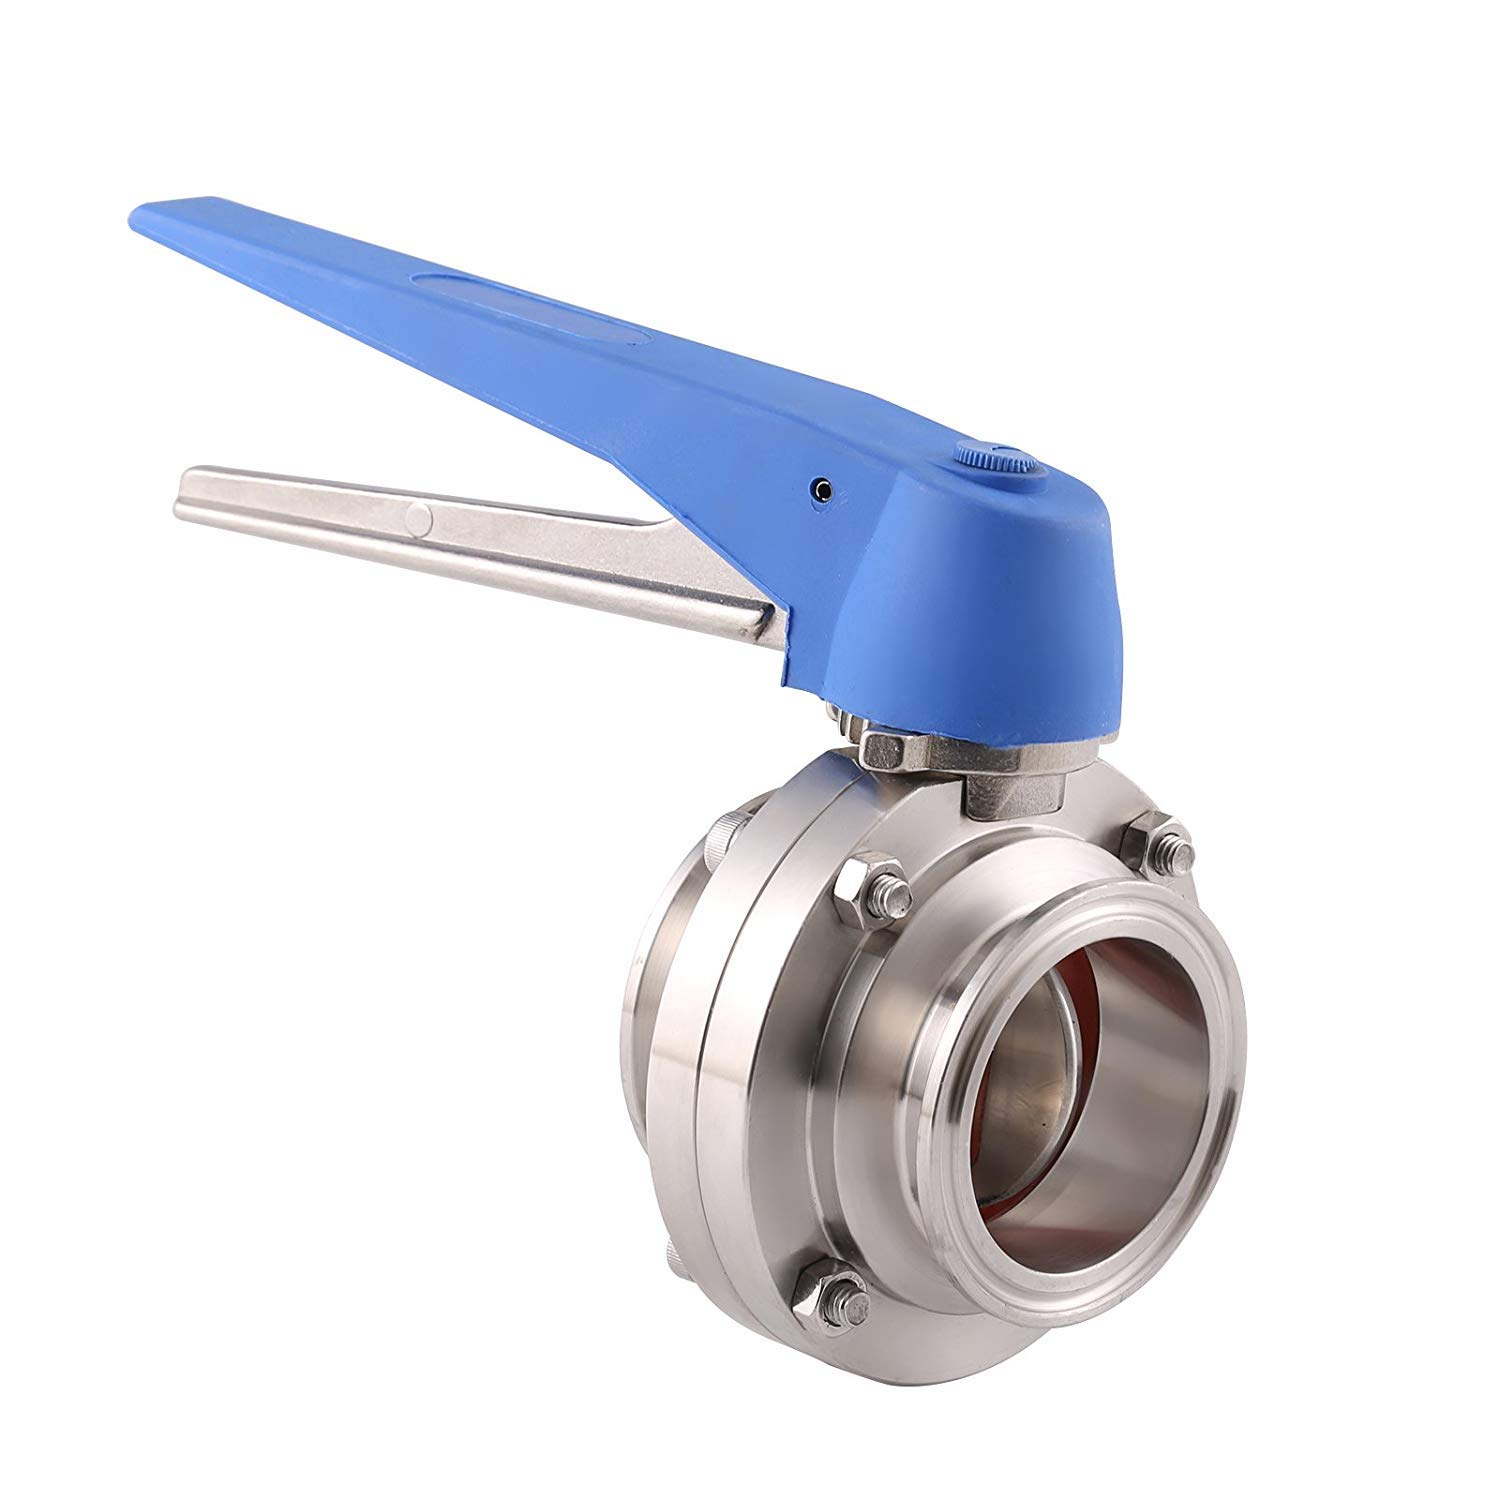 BOKYWOX 1.5'' Sanitary Stainless Steel 304 Tri Clamp Butterfly Valve with Trigger Handle and Silicon Seal by BOKYWOX